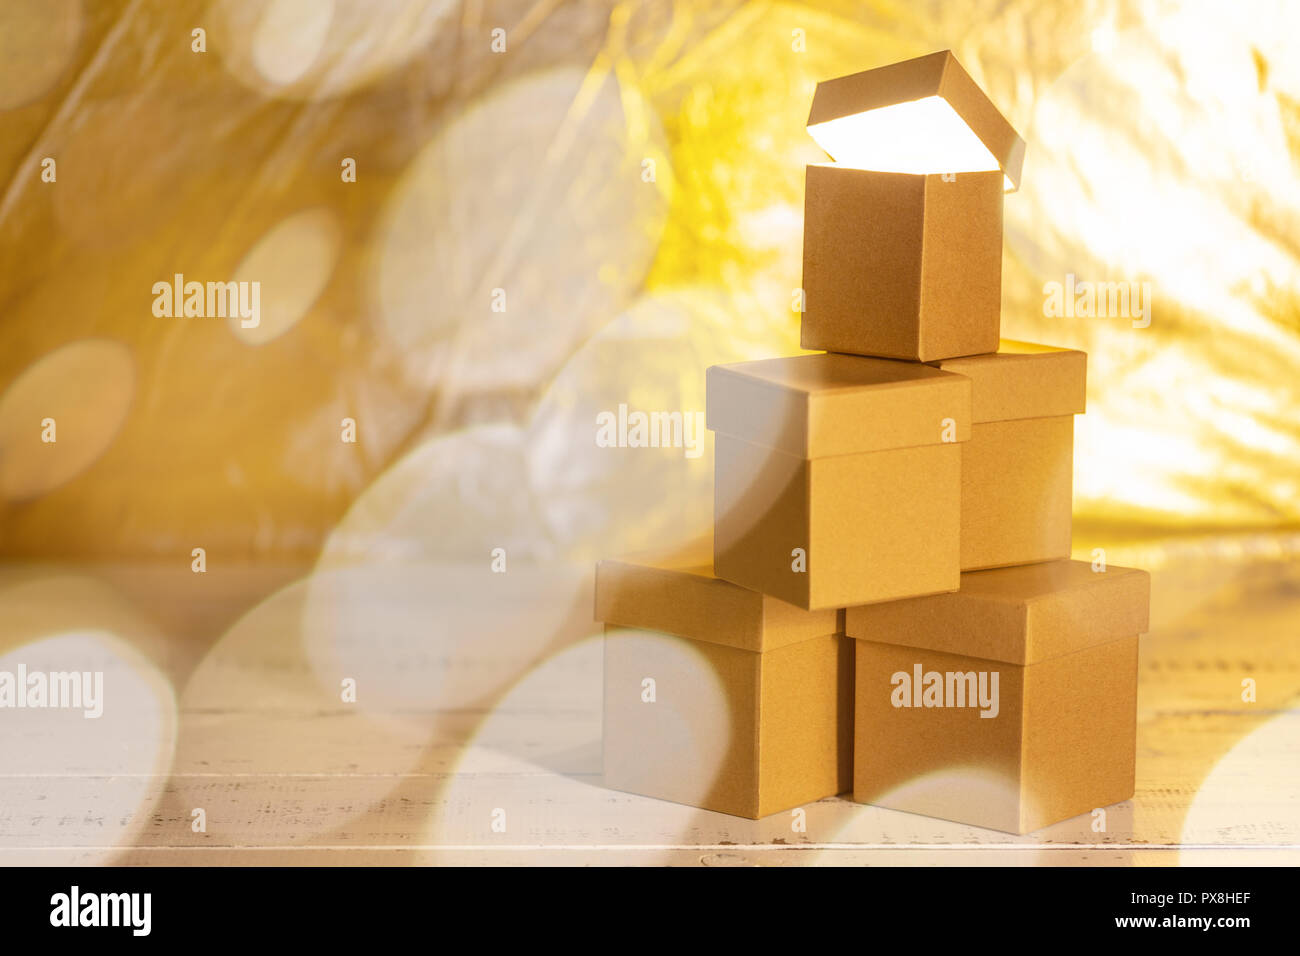 Small Cardboard Gift Boxes With Bokeh Effect As Concept Of Christmas